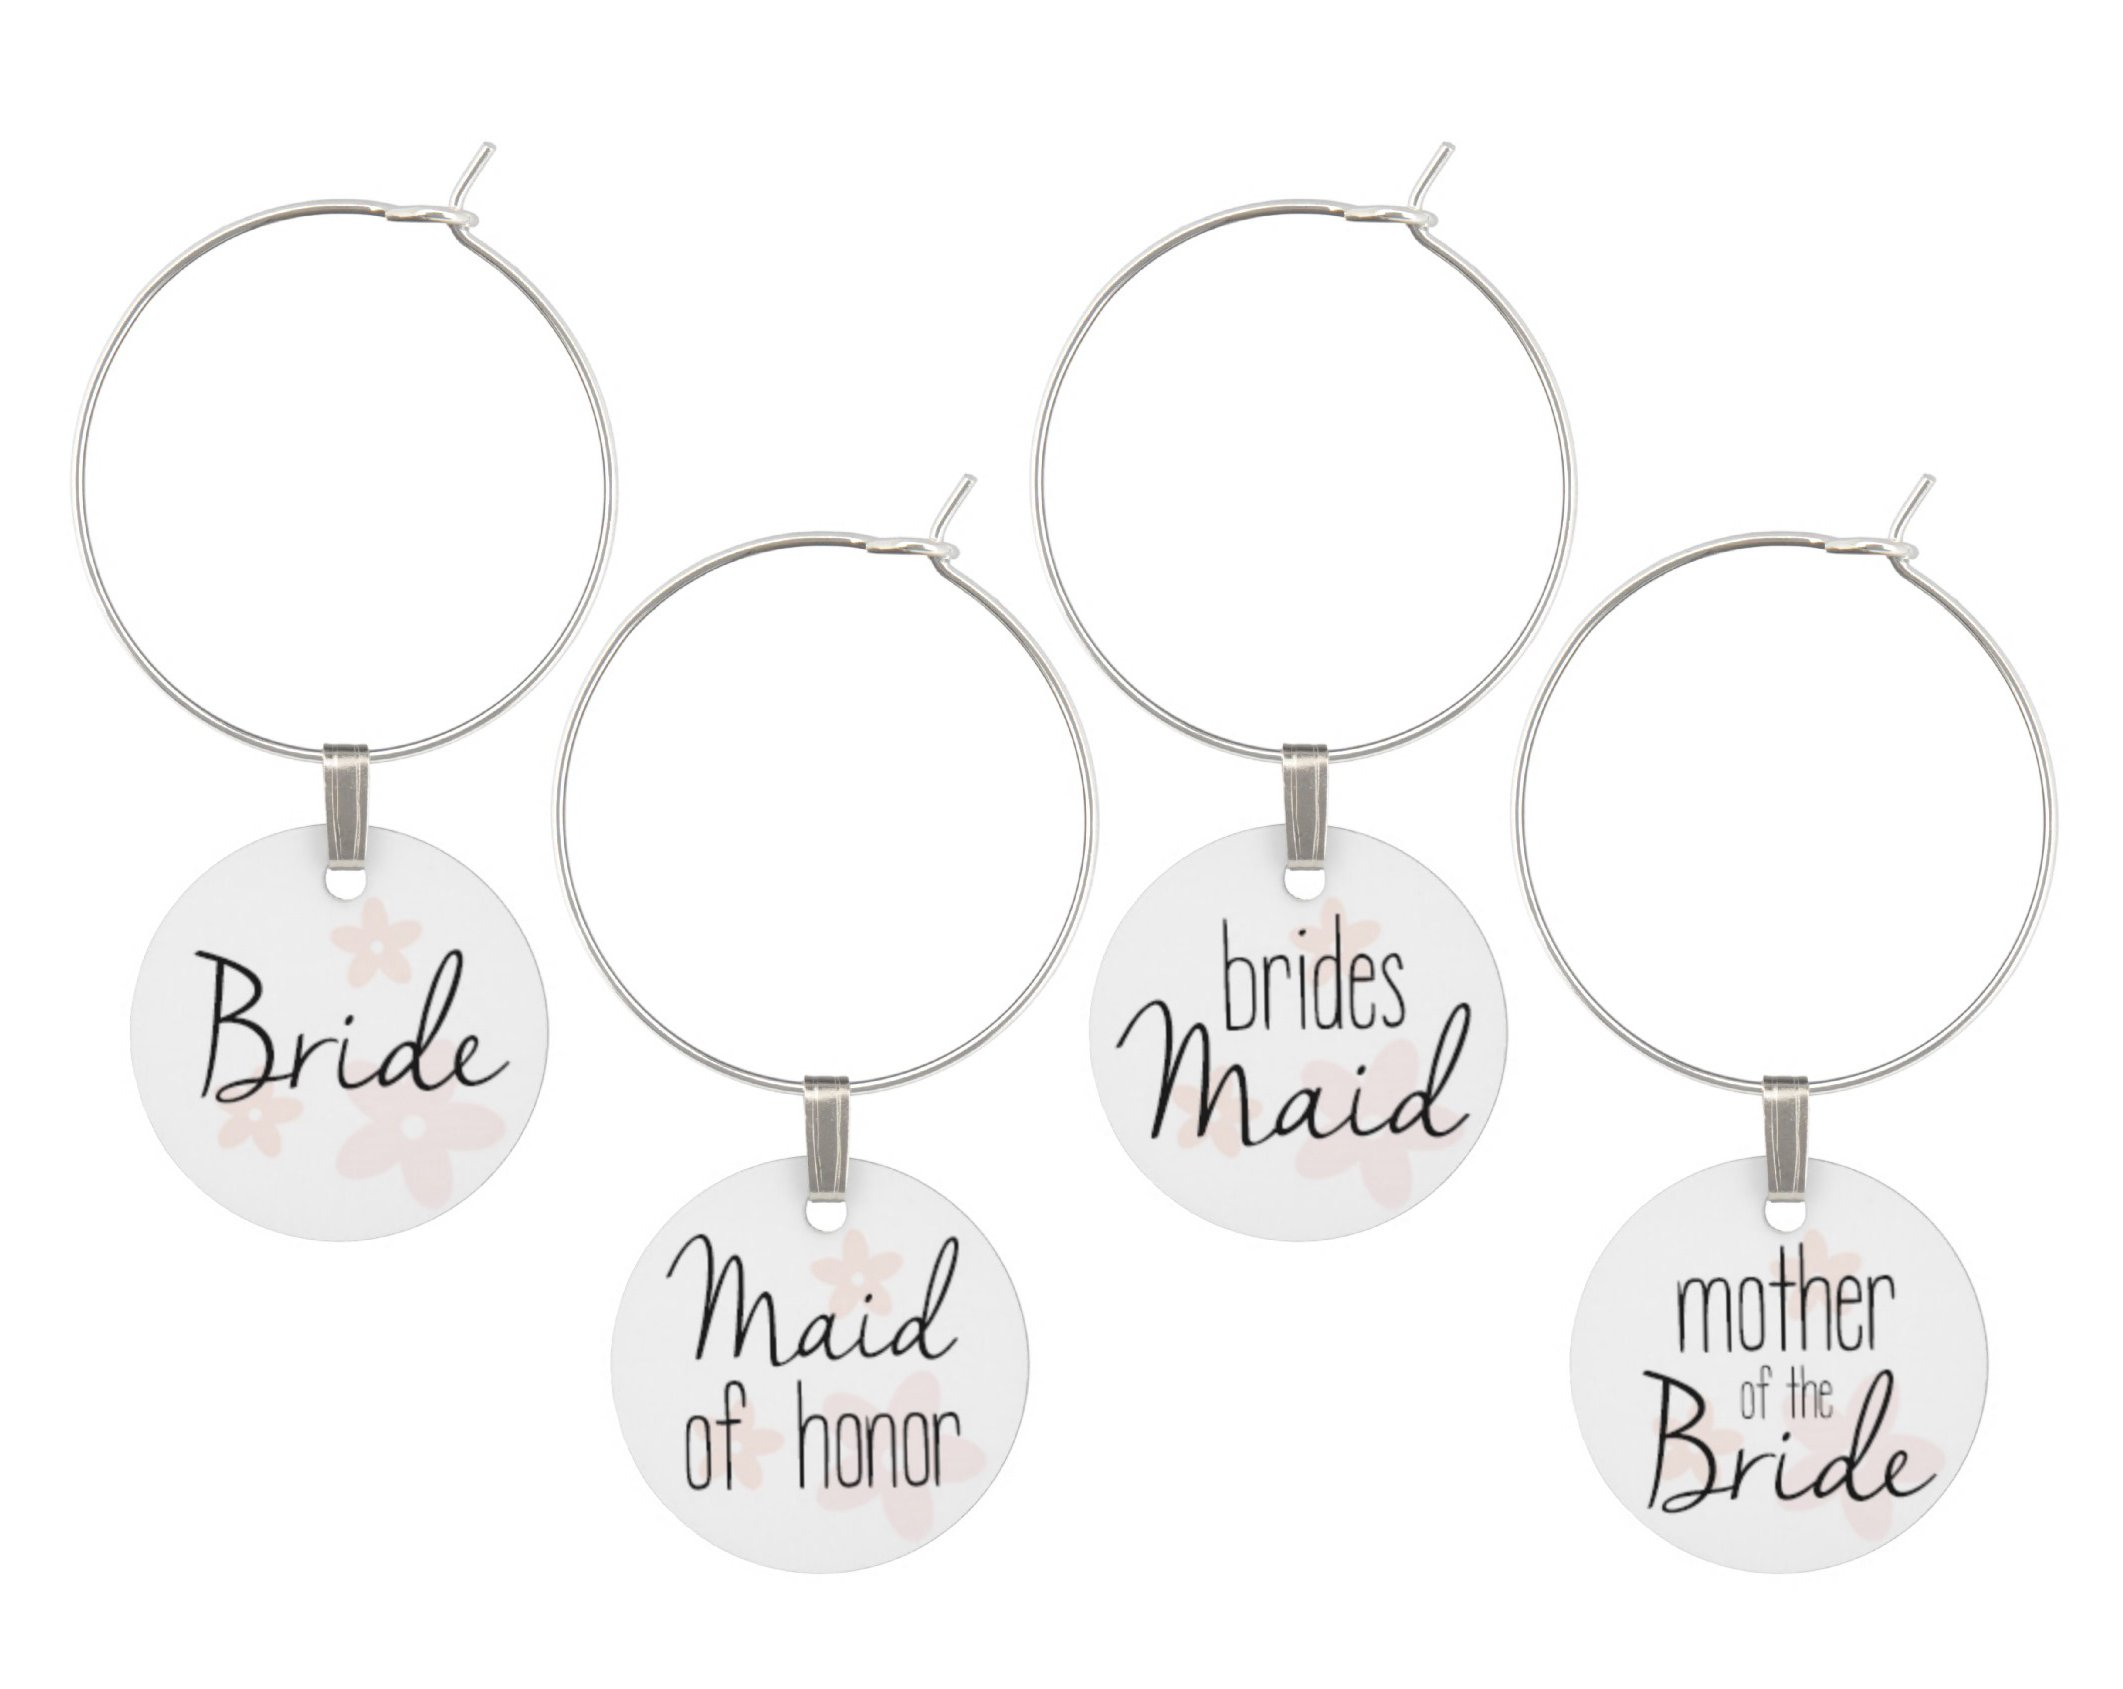 Wine Glass Charms for Wedding - Bridal Party Set of Rings, Tags, Shower Favors by TJ Formal